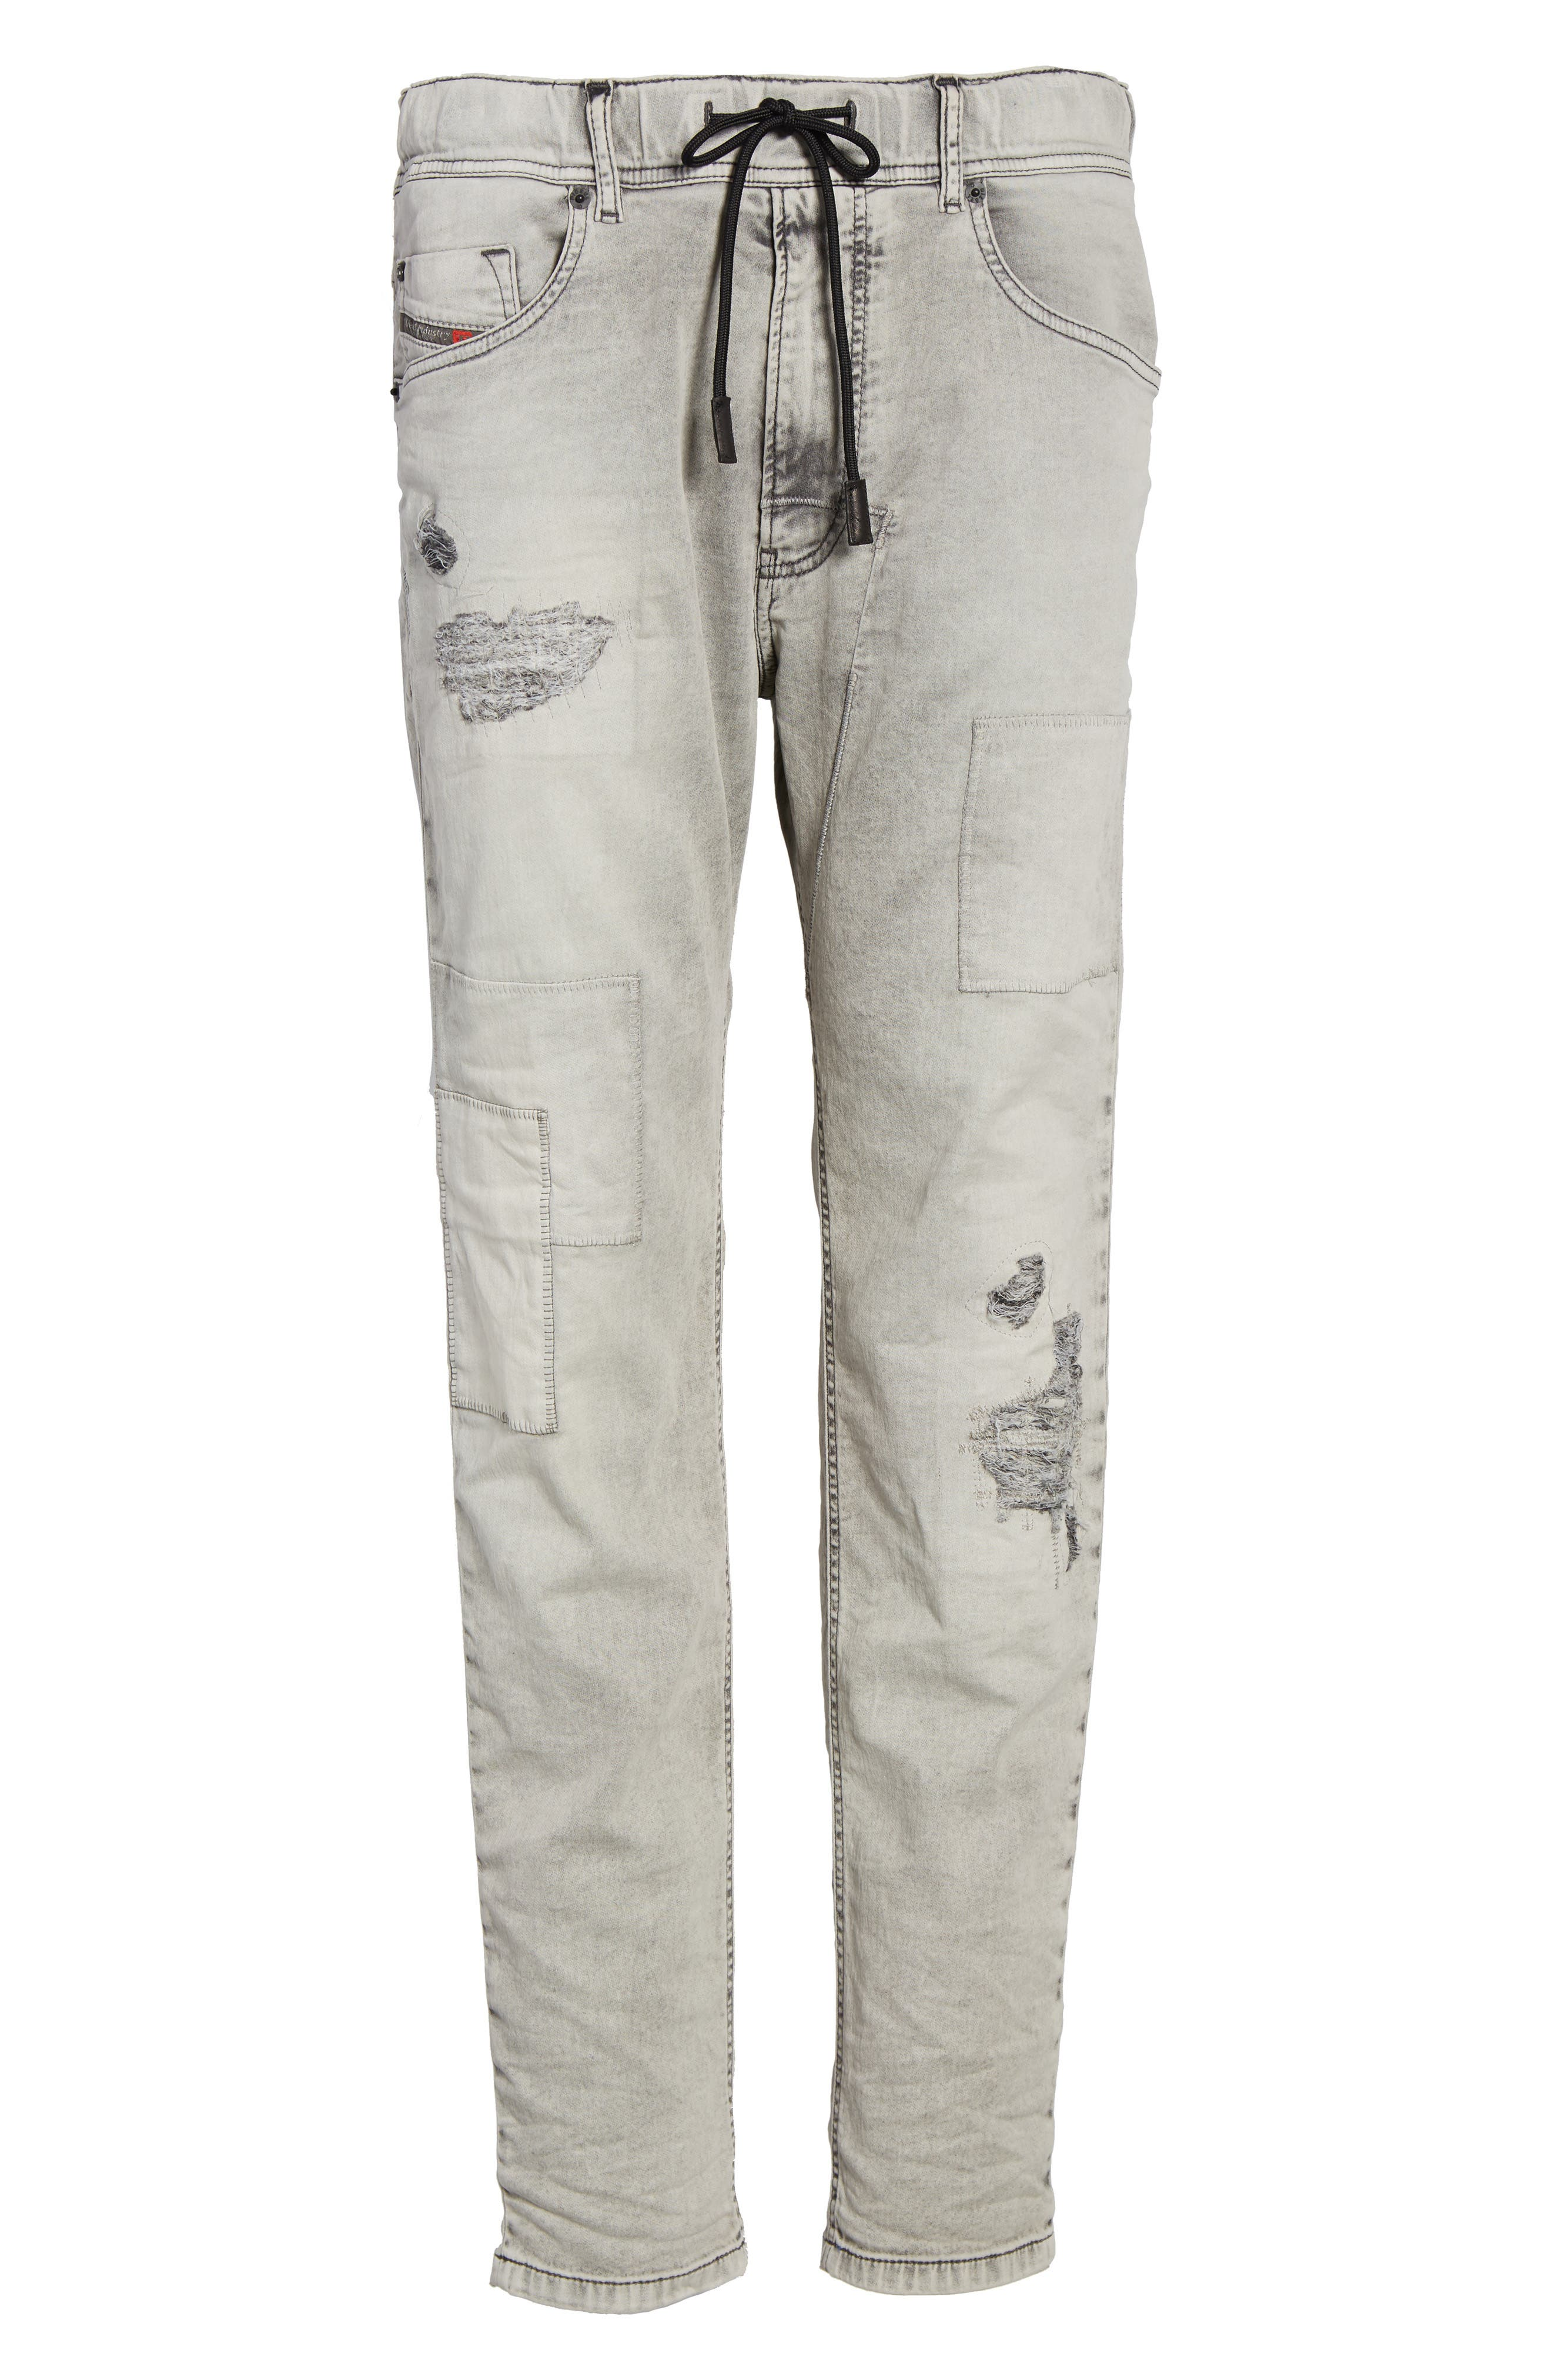 Narrot Slouchy Skinny Fit Jeans,                             Alternate thumbnail 6, color,                             0684M